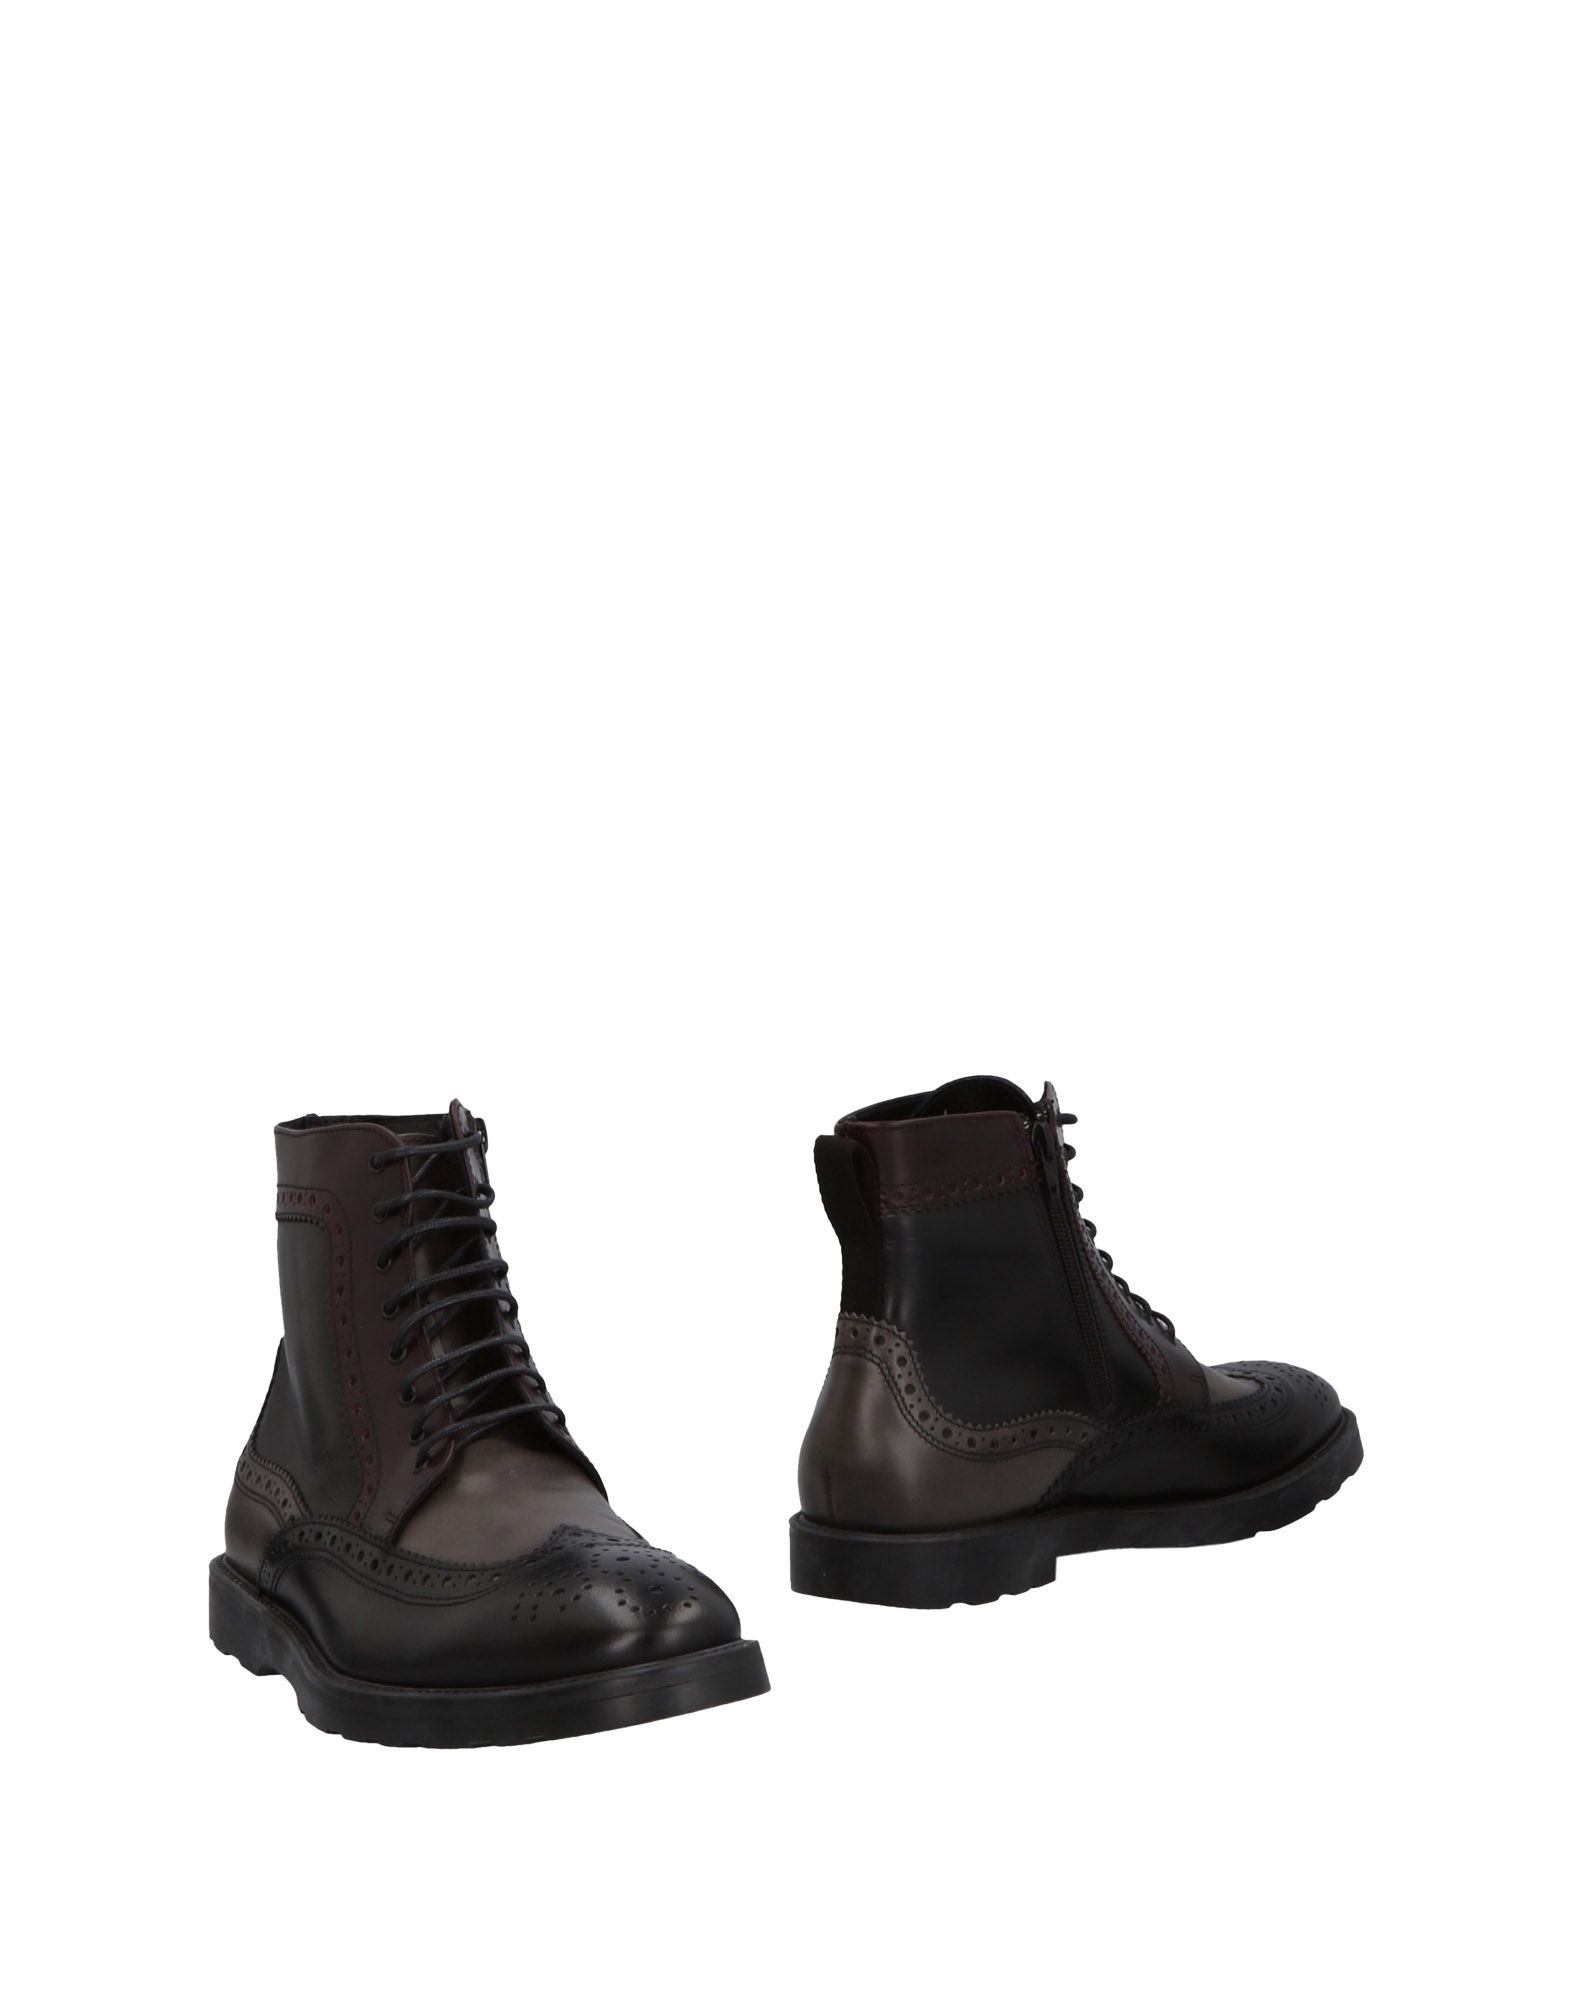 DAMA Ankle Boots in Black